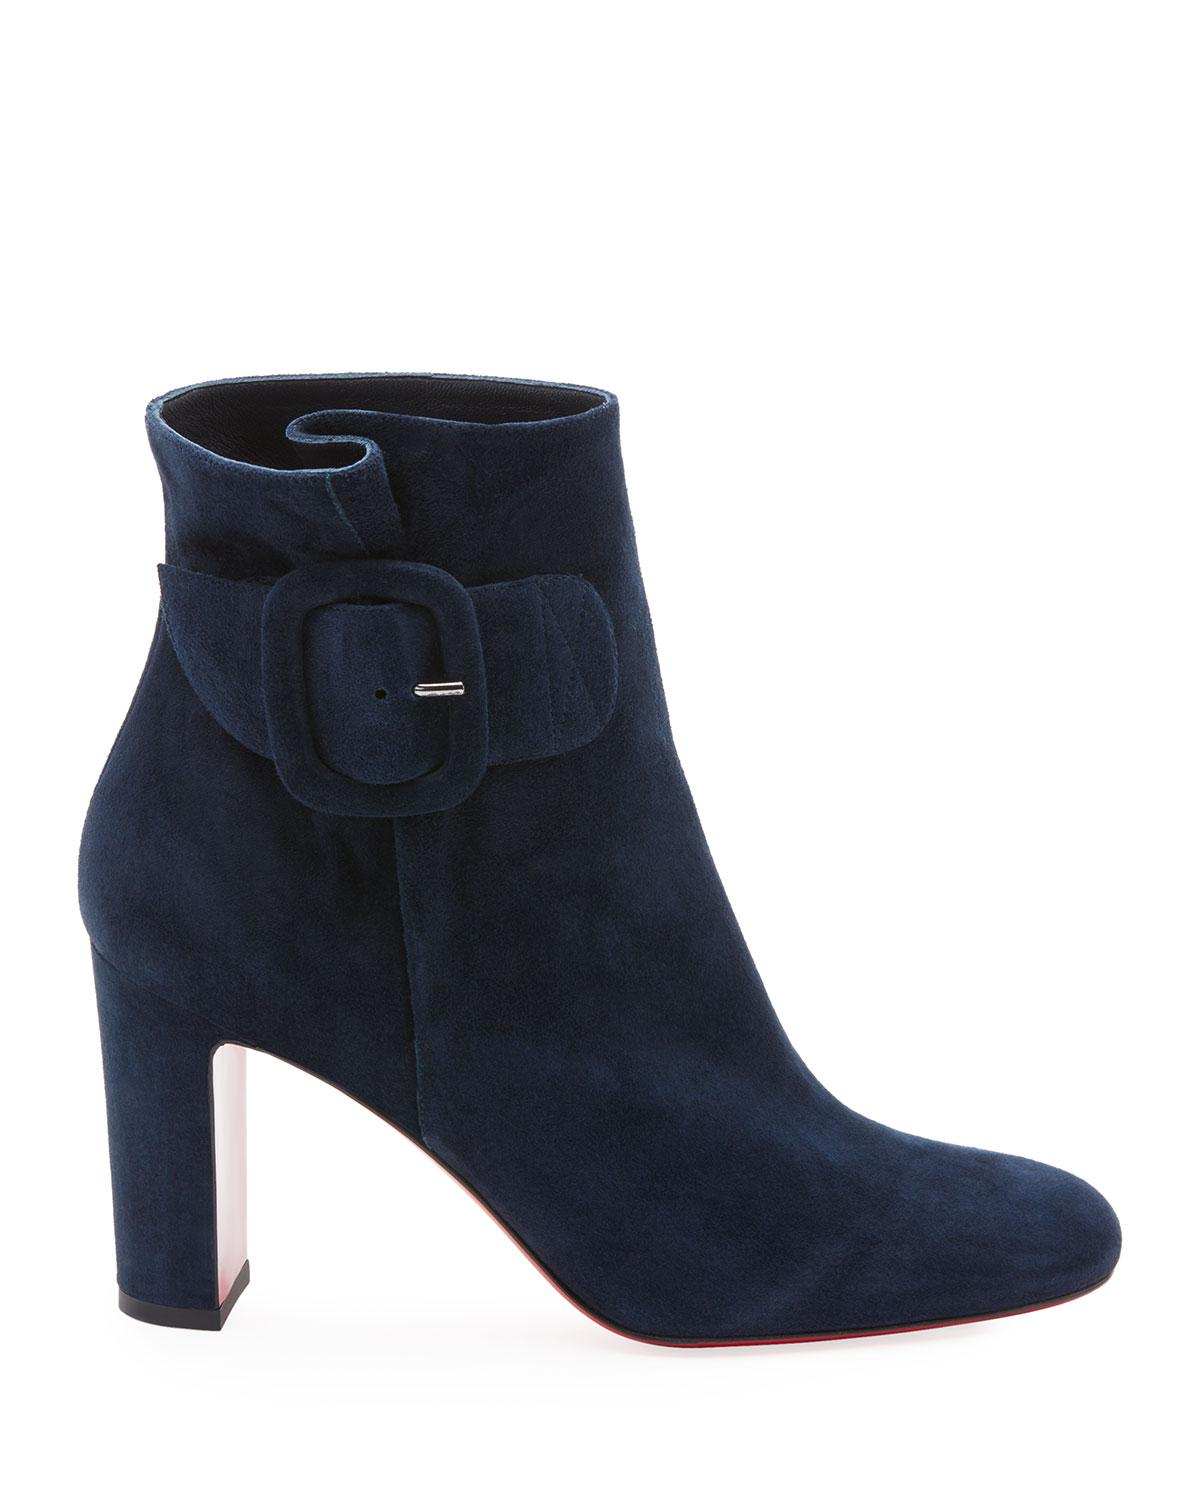 9a0309724f5b Lyst - Christian Louboutin Tres Olivia Suede Buckled Red Sole Booties in  Blue